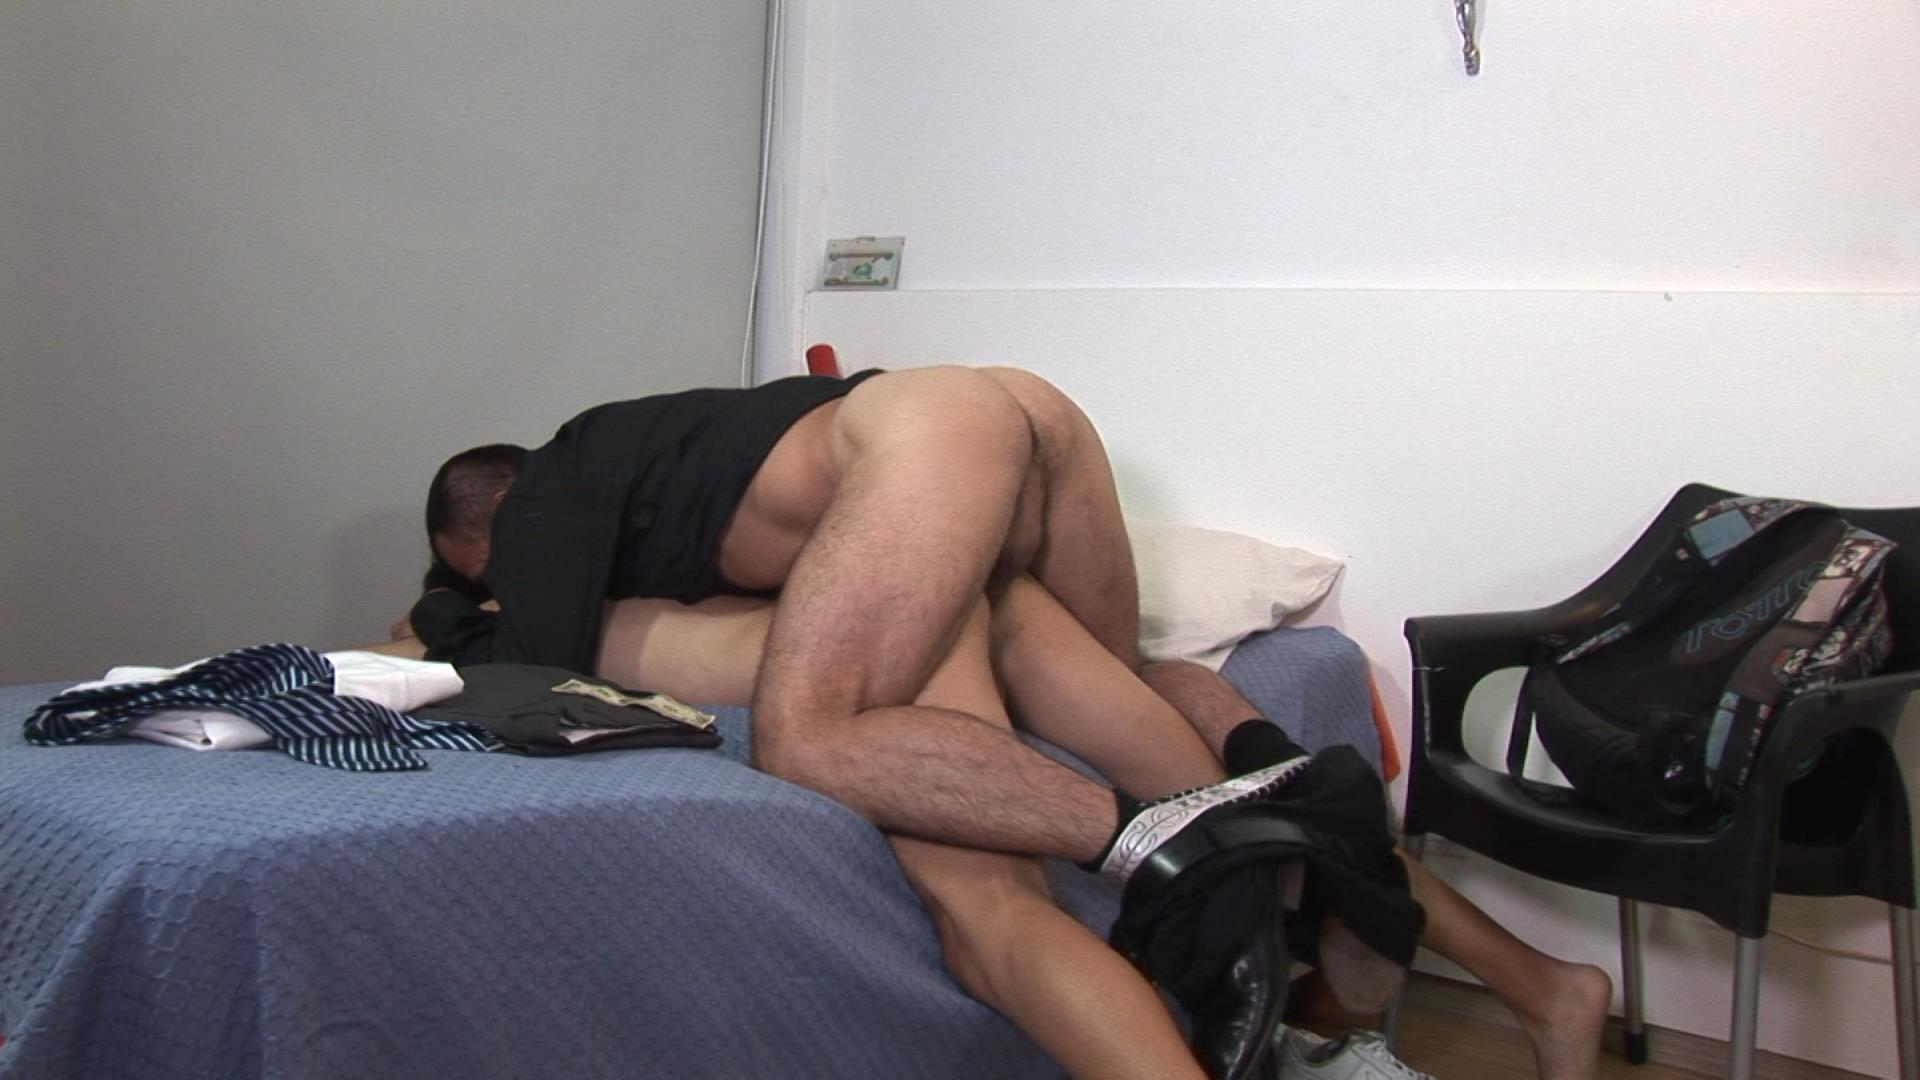 Bareback-Me-Daddy-Gay-Priest-Fucking-A-Student-18 Getting Barebacked By An Older Catholic Priest While In Boarding School